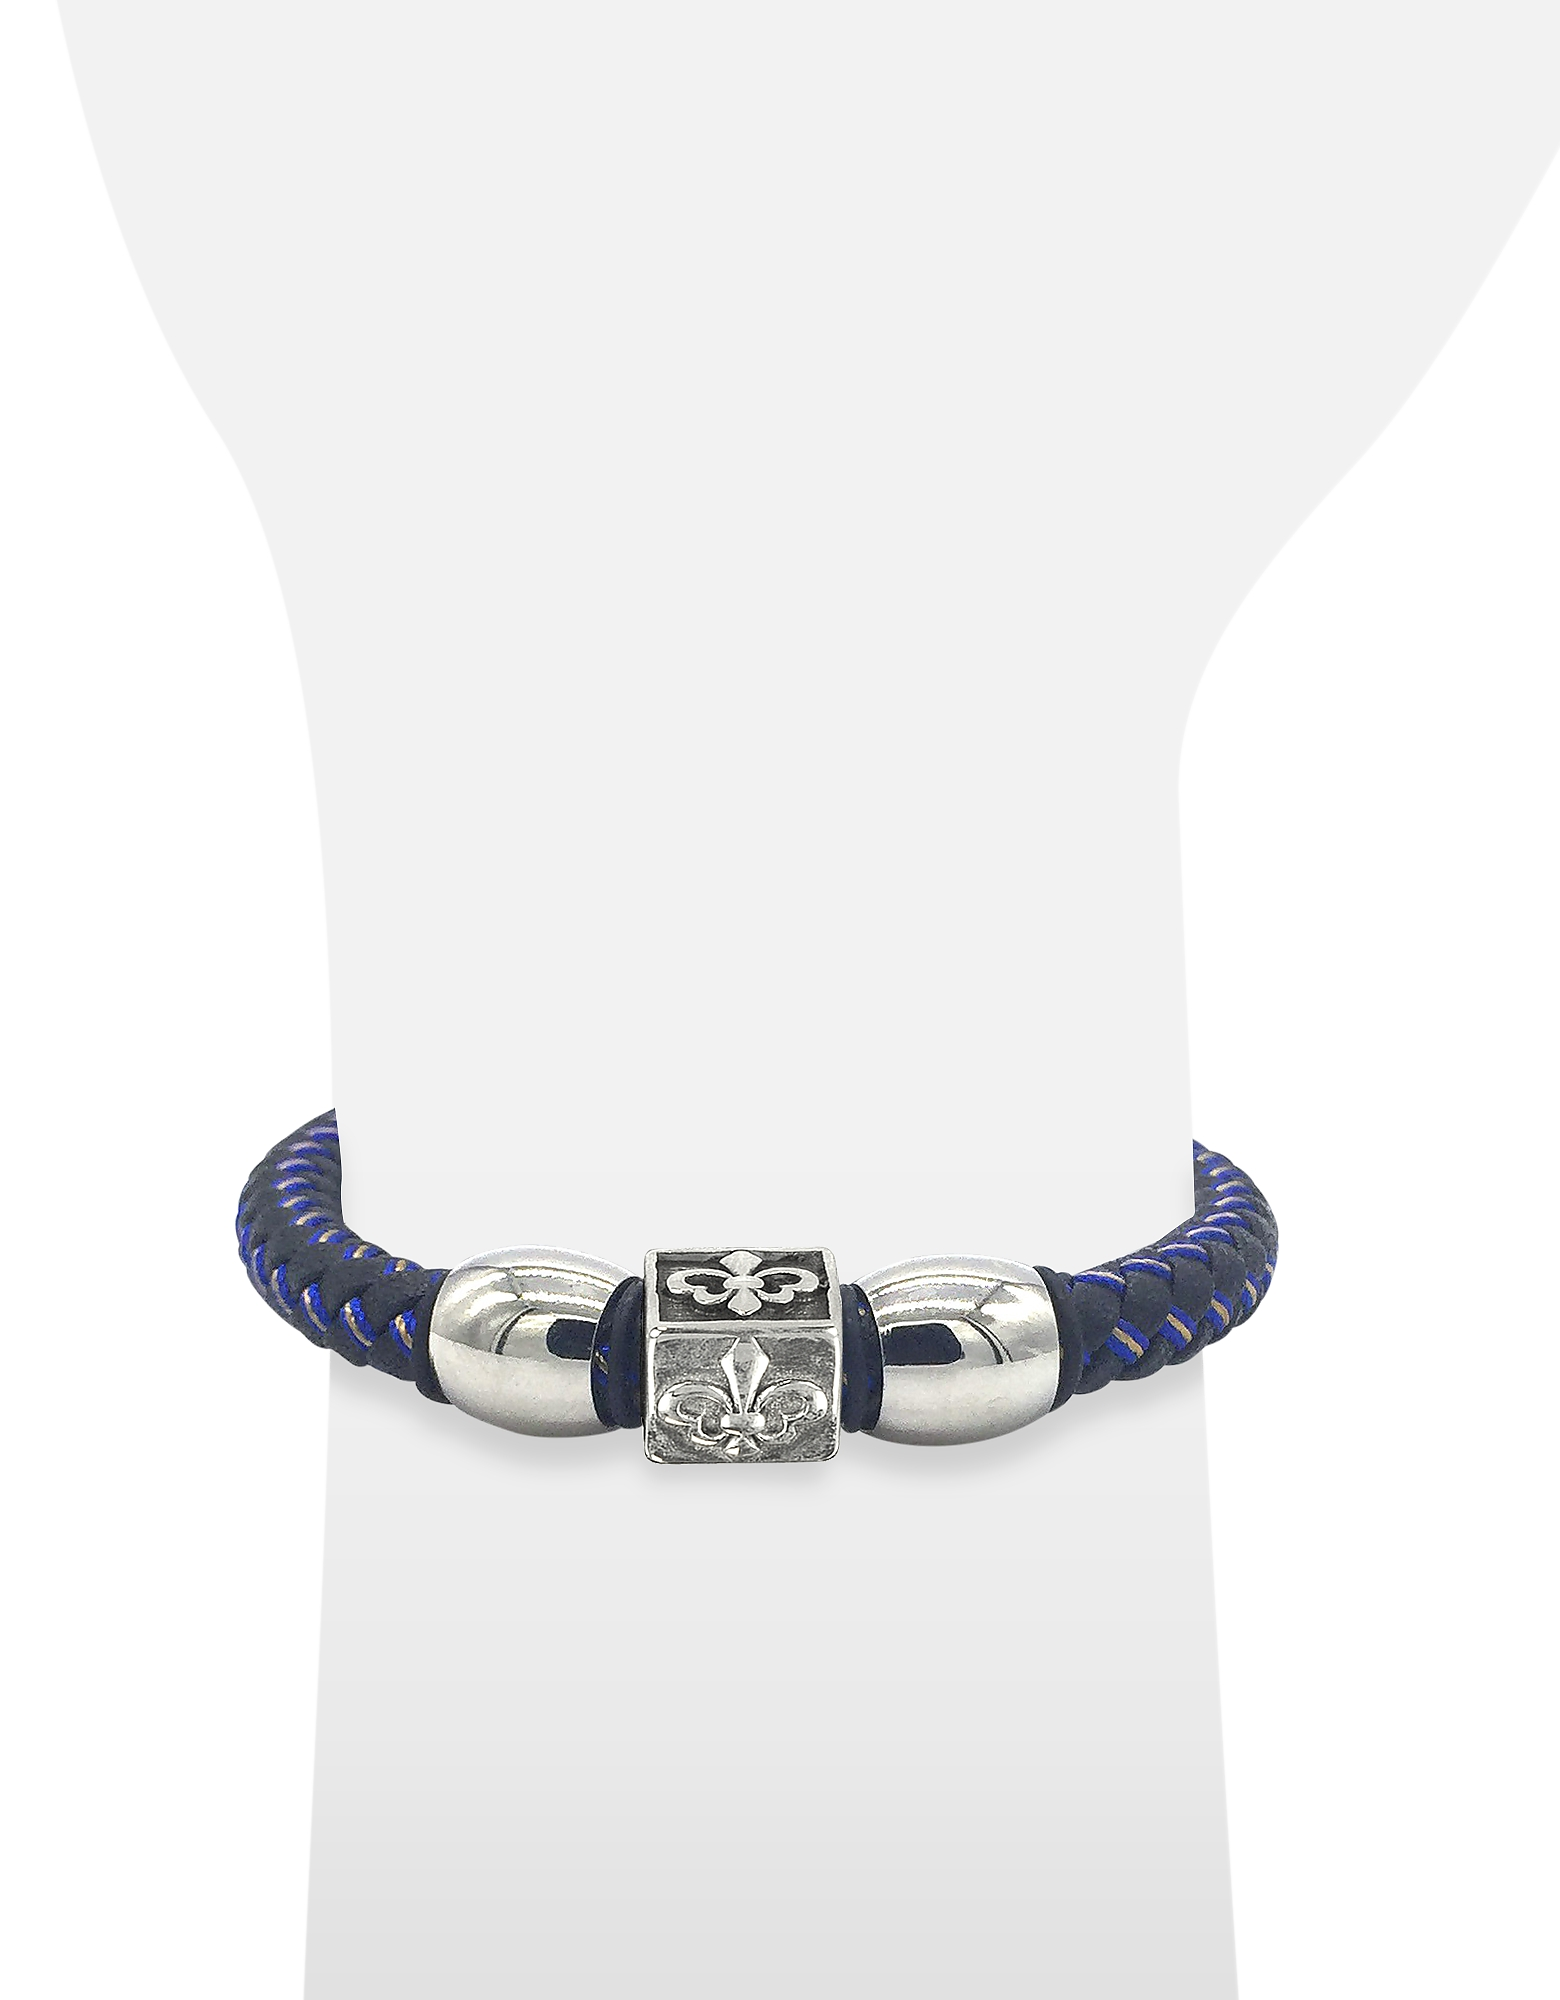 Lily Engraved Stainless Steel and Braided Leather Men's Bracelet от Forzieri.com INT